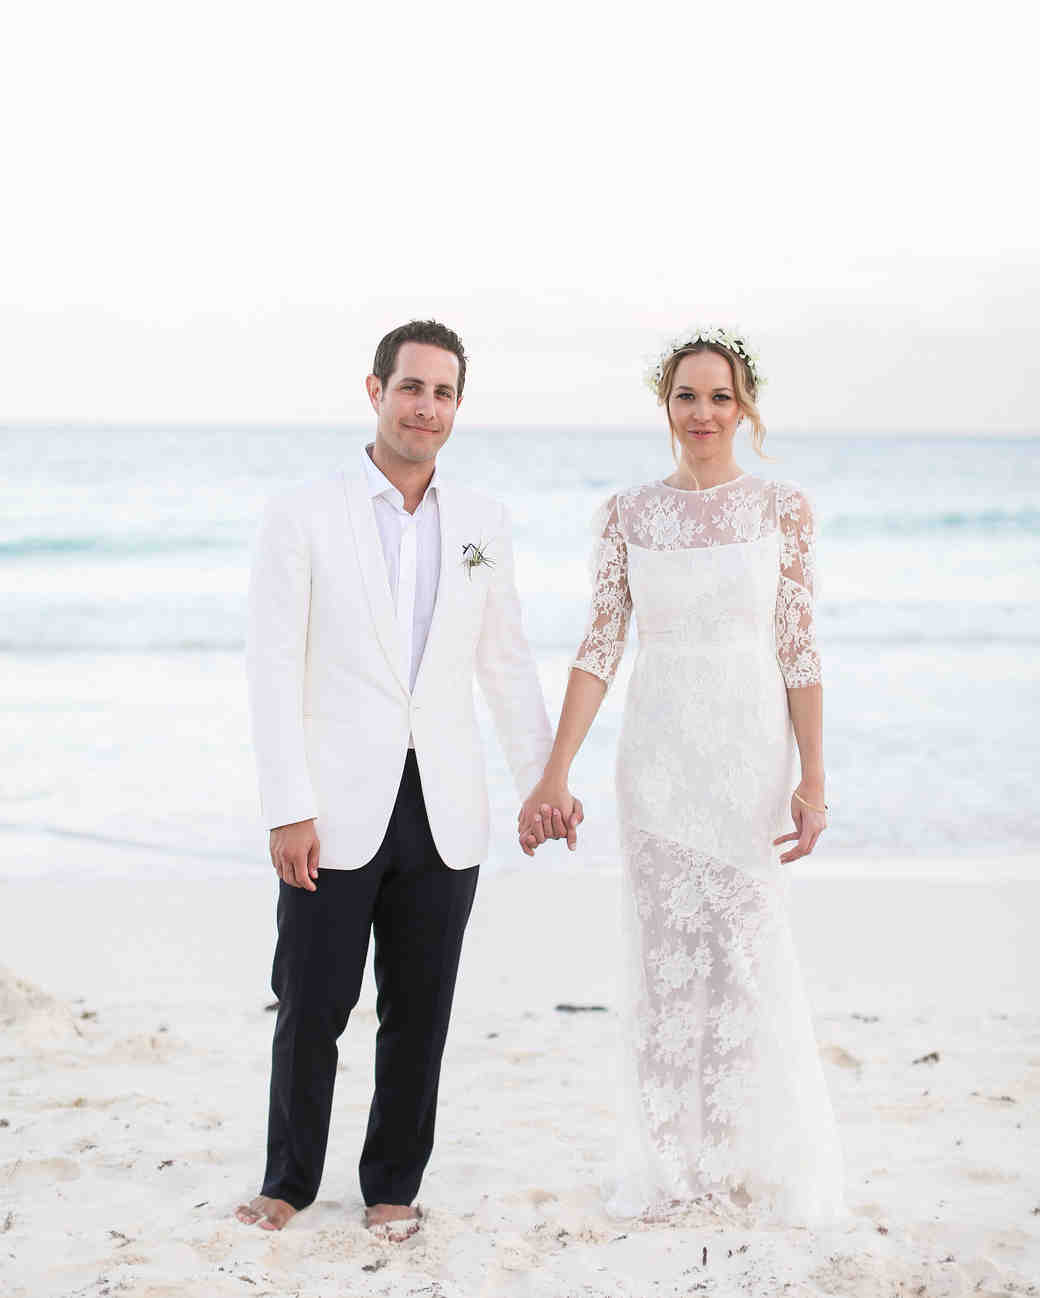 Olivia and Keith's Dia de los Muertos Beach Wedding